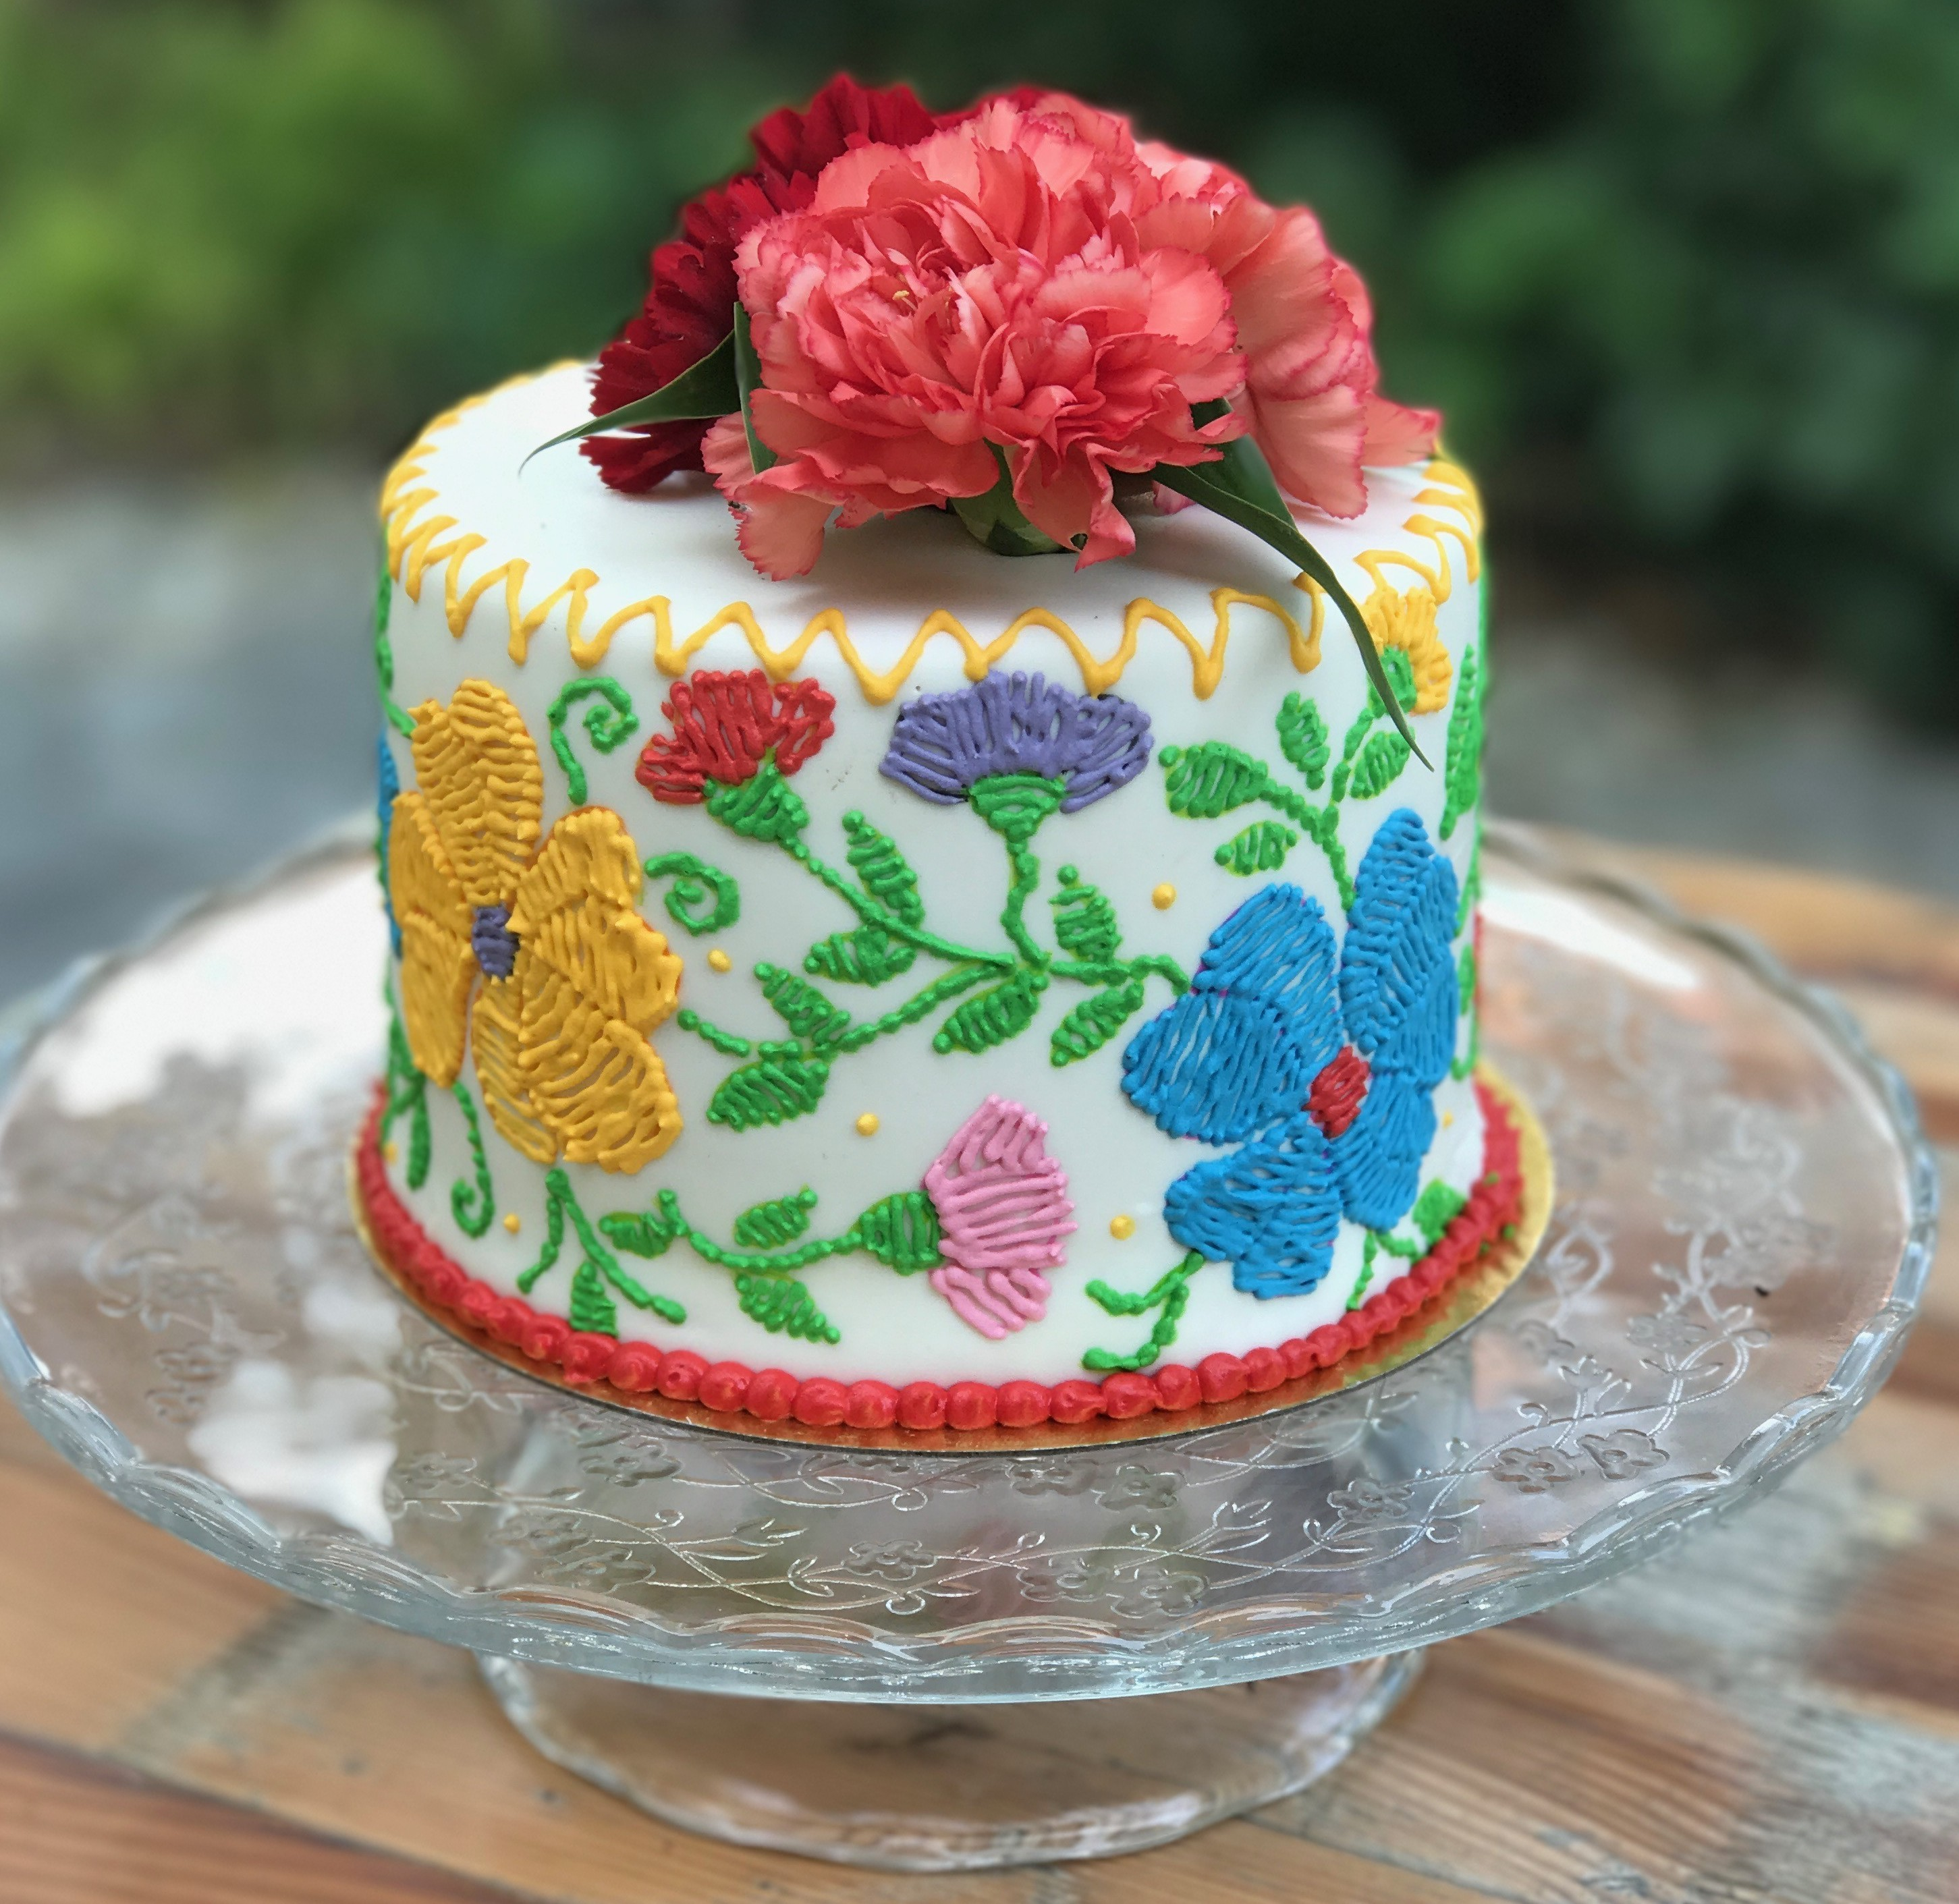 Stunning Homemade Mexican Embroidery Cake Design